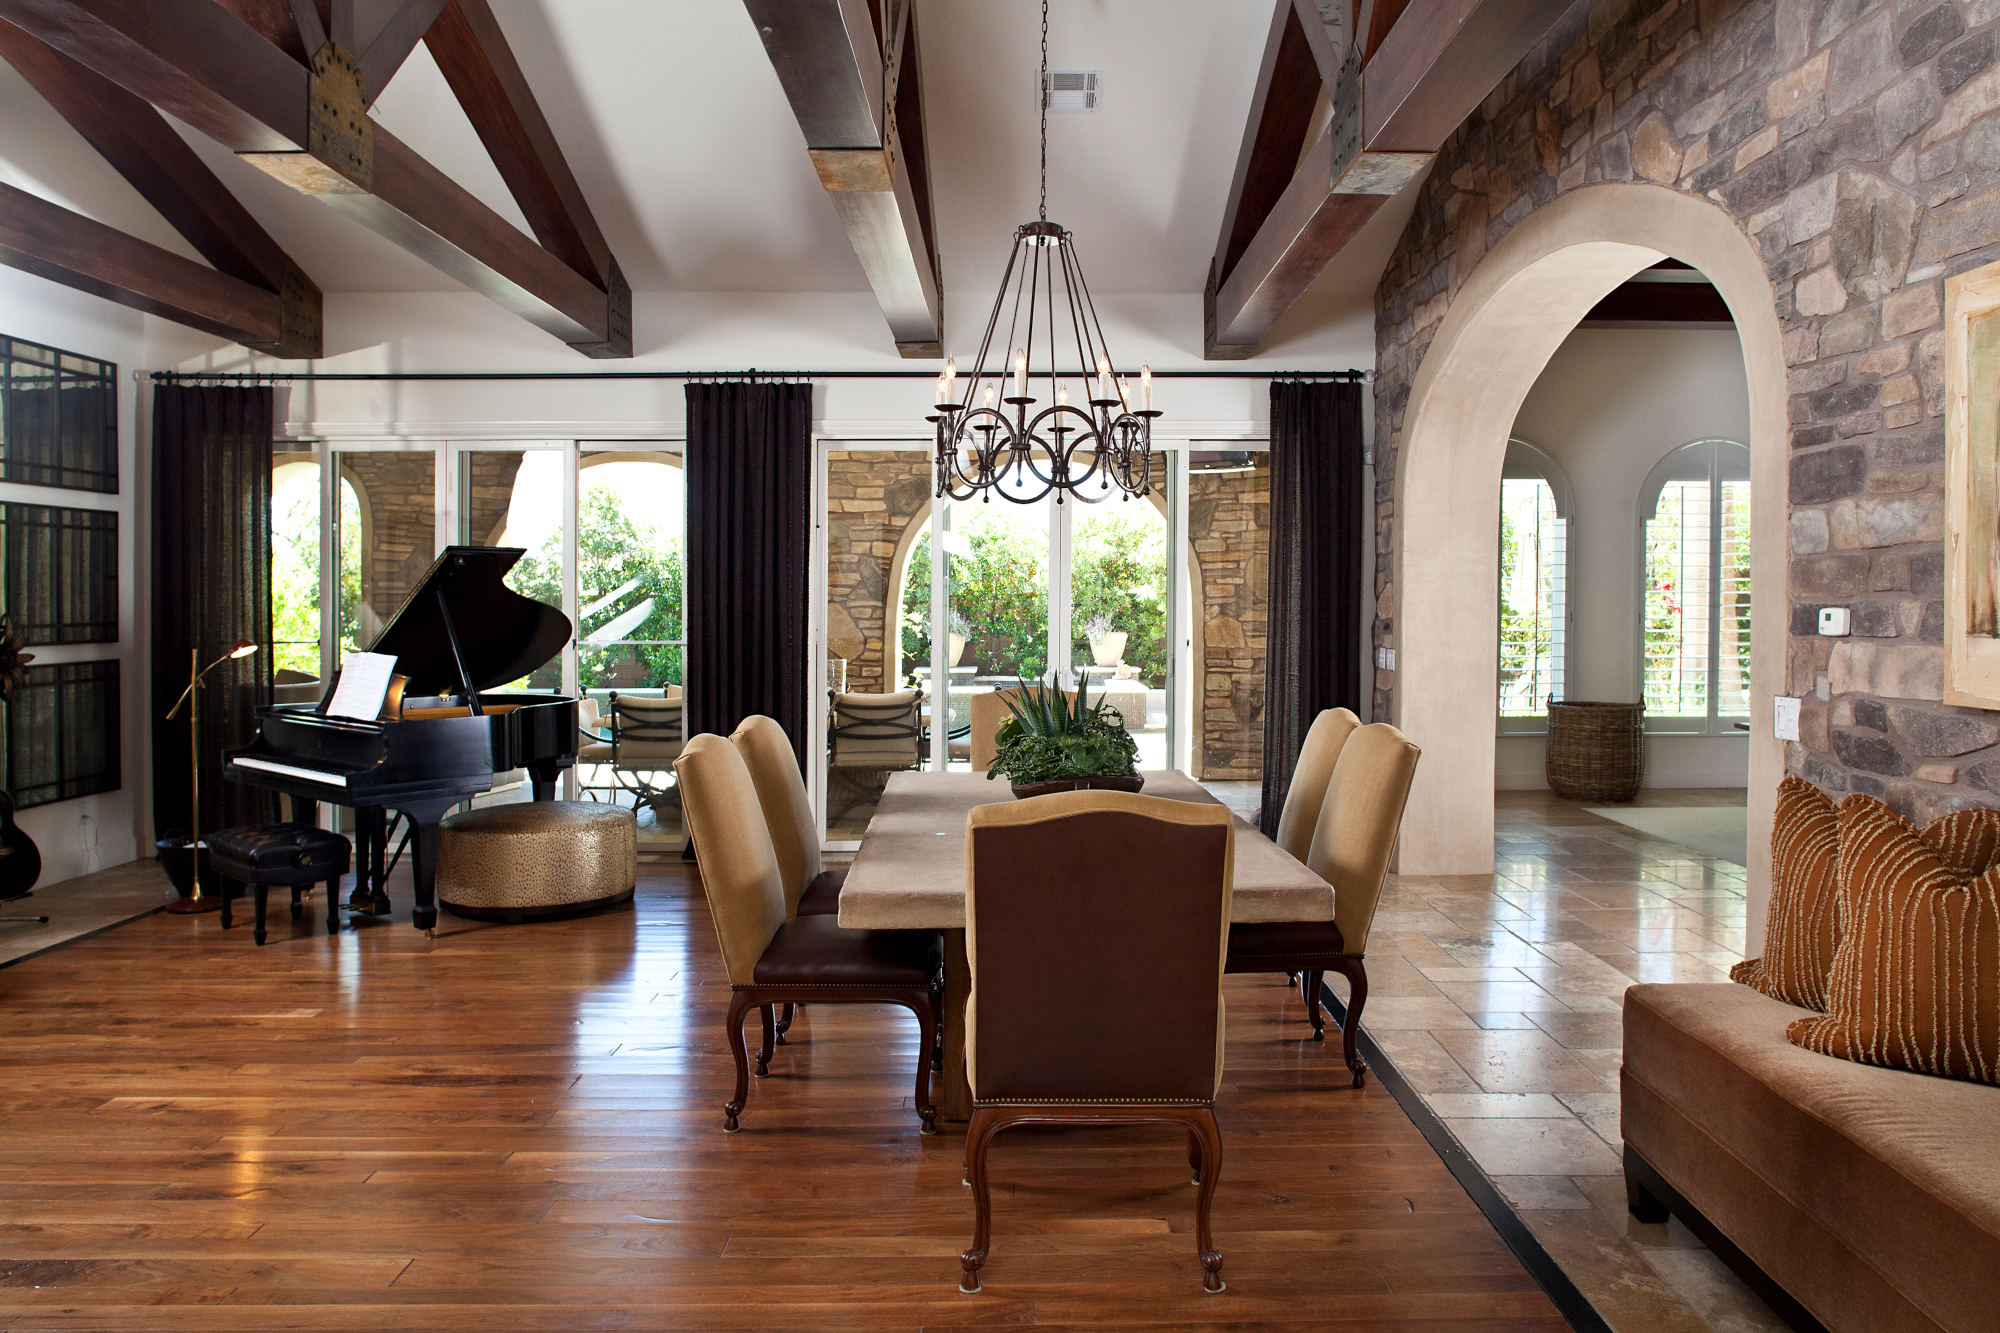 Spanish styled dining room with wood ceiling trusses, wood flooring, black wrought iron chandelier.